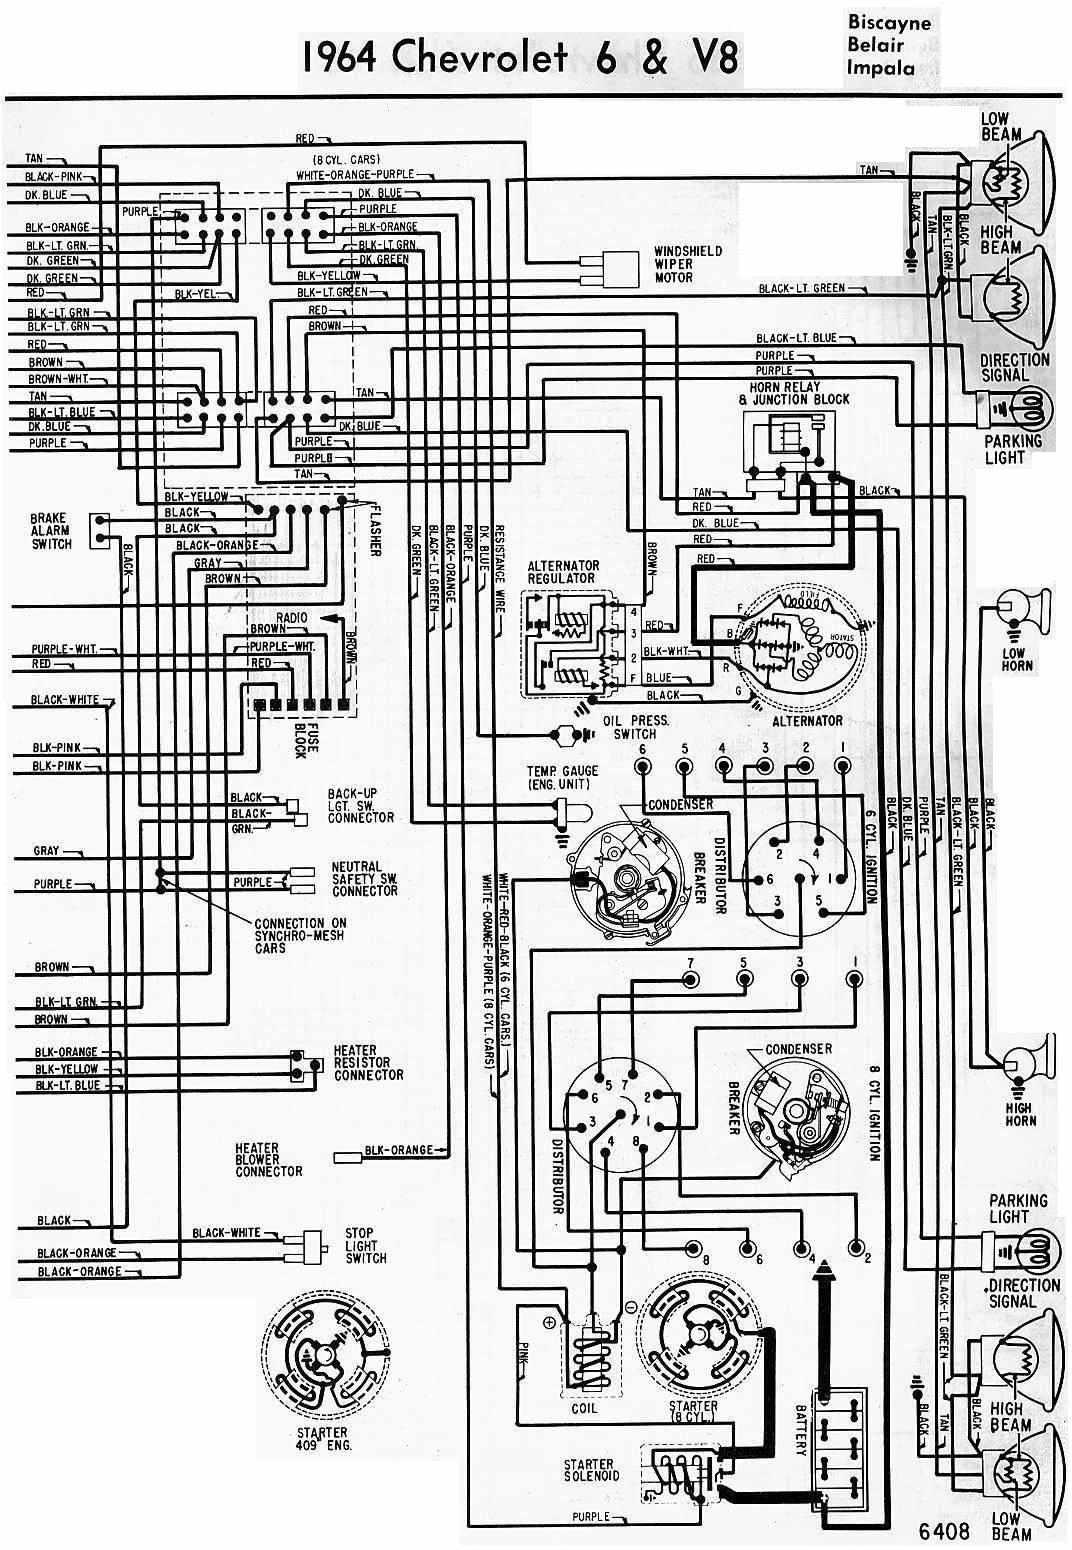 Electrical+Wiring+Diagram+Of+1964+Chevrolet+6+And+V8 2011 impala wiring diagram 2005 impala ignition wiring diagram 1964 impala headlight switch wiring diagram at webbmarketing.co